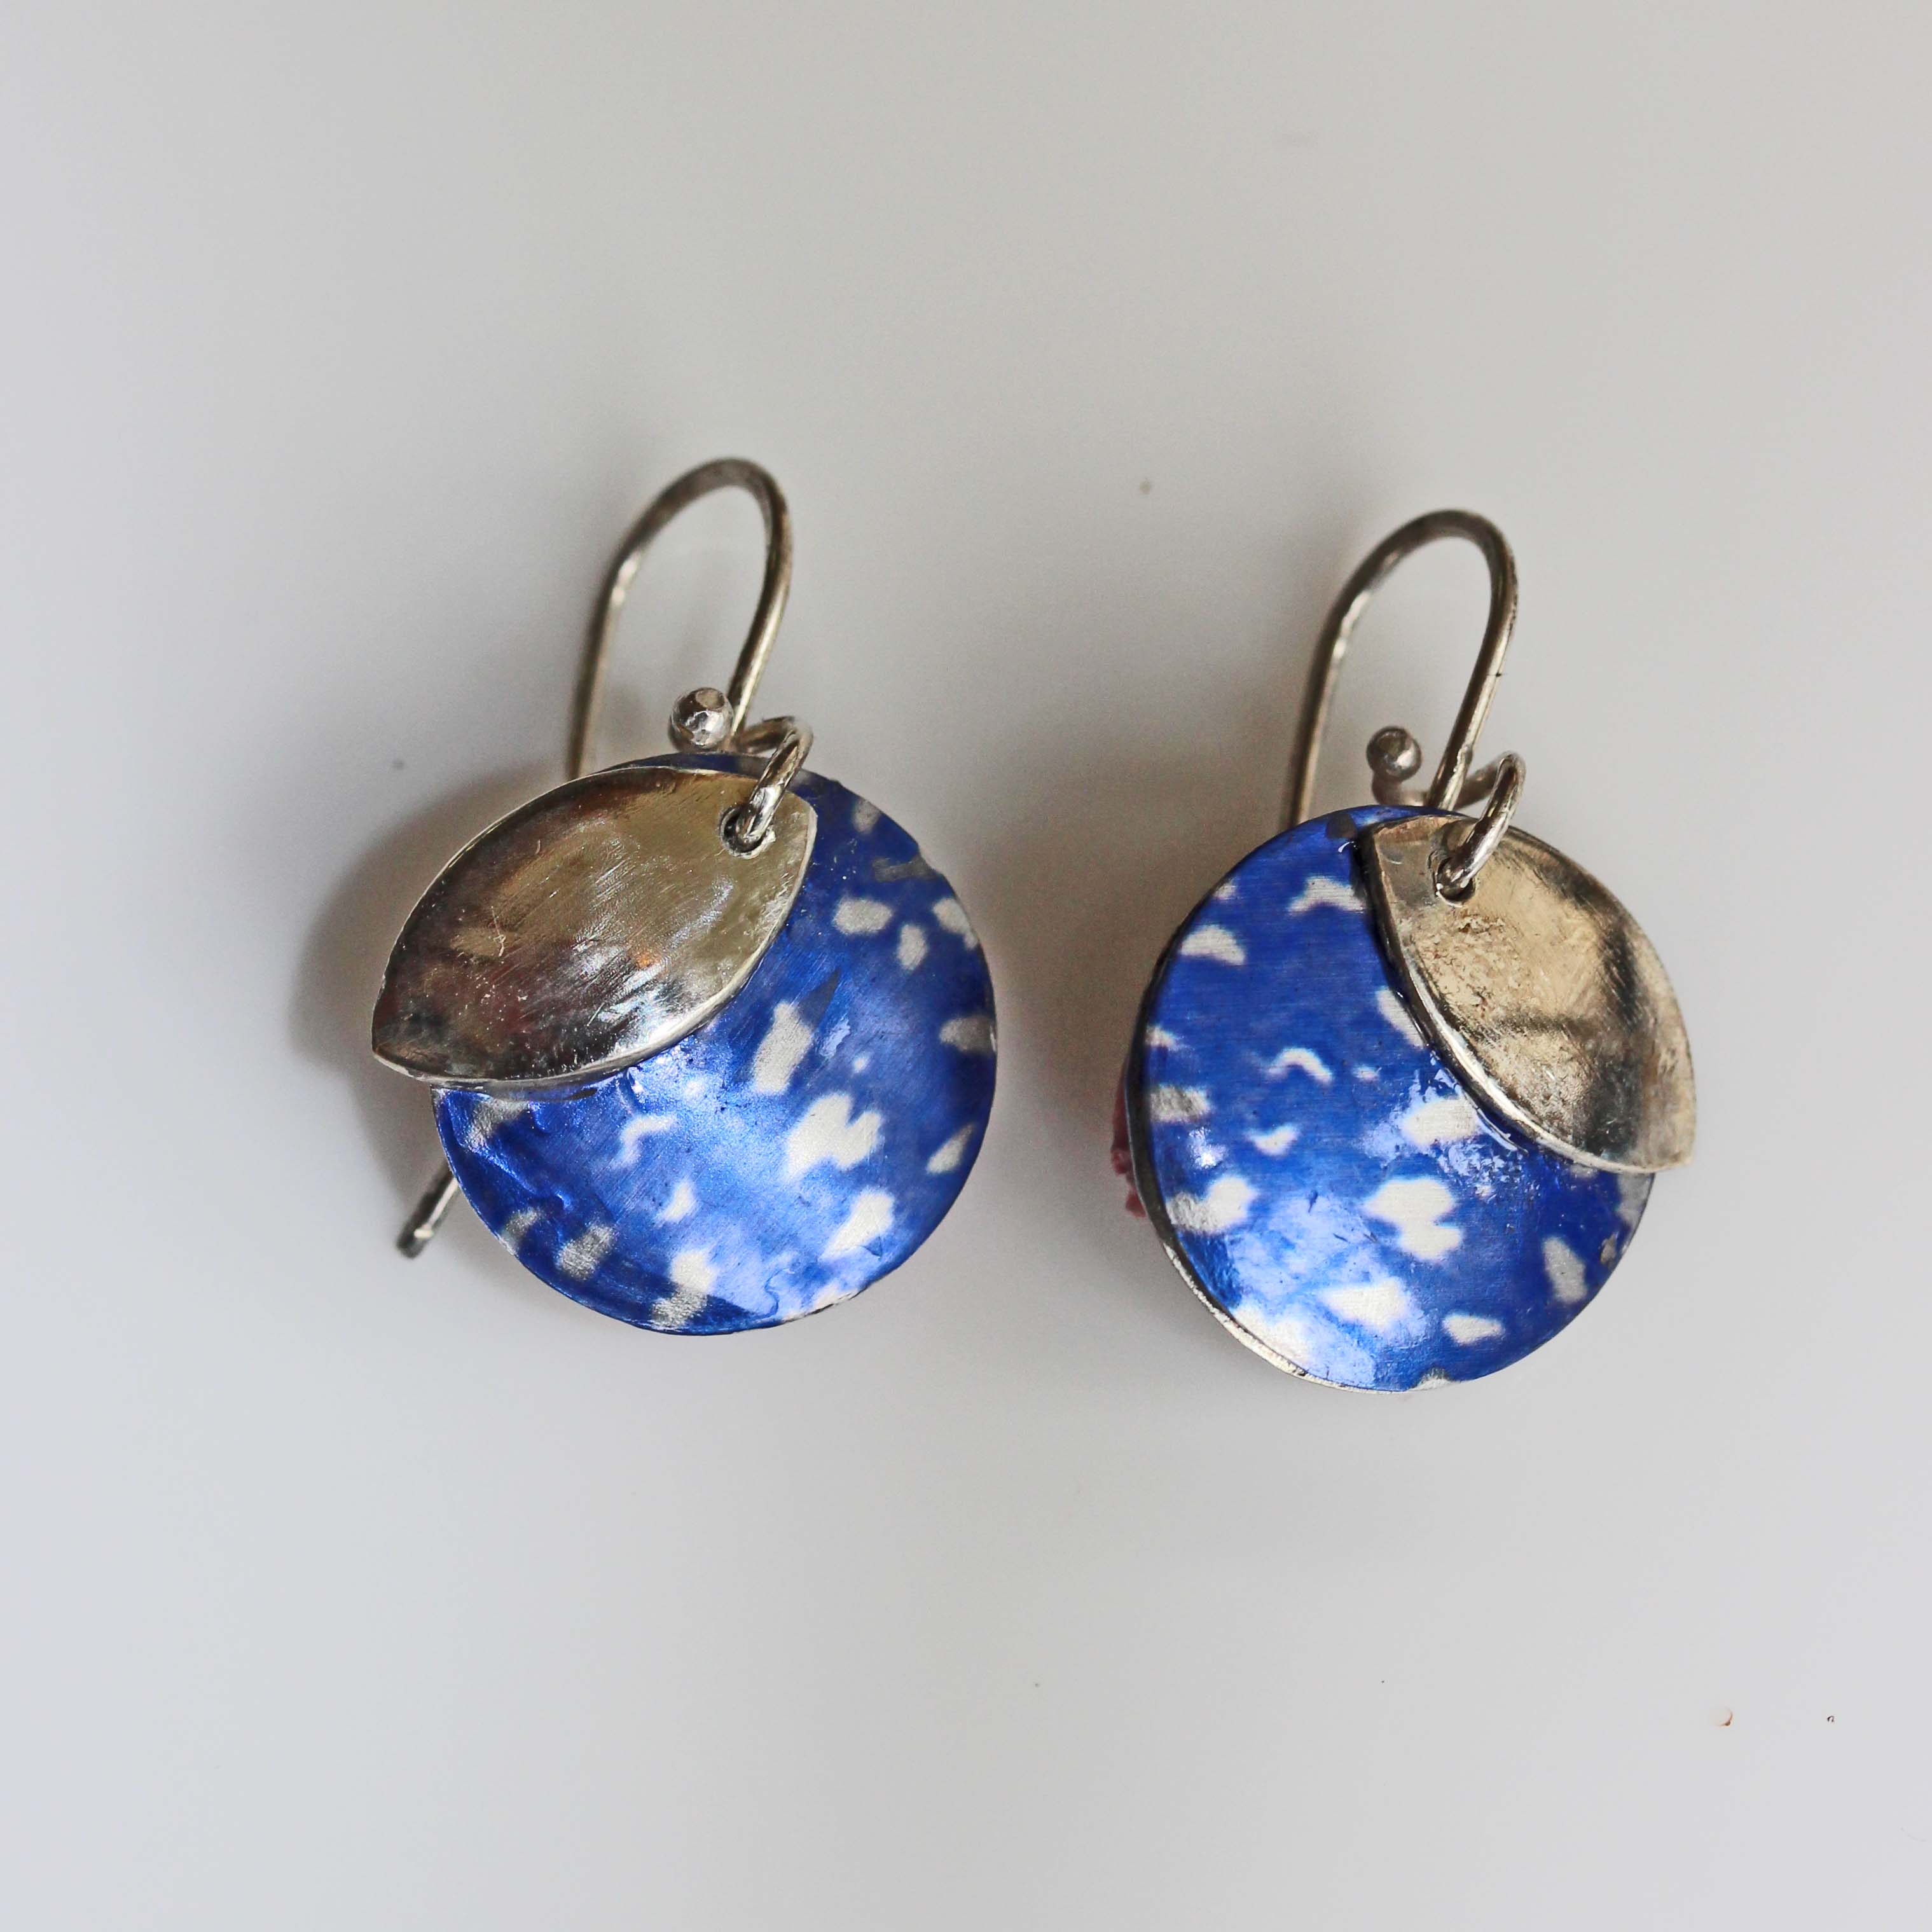 Midnight blue quoll earrings